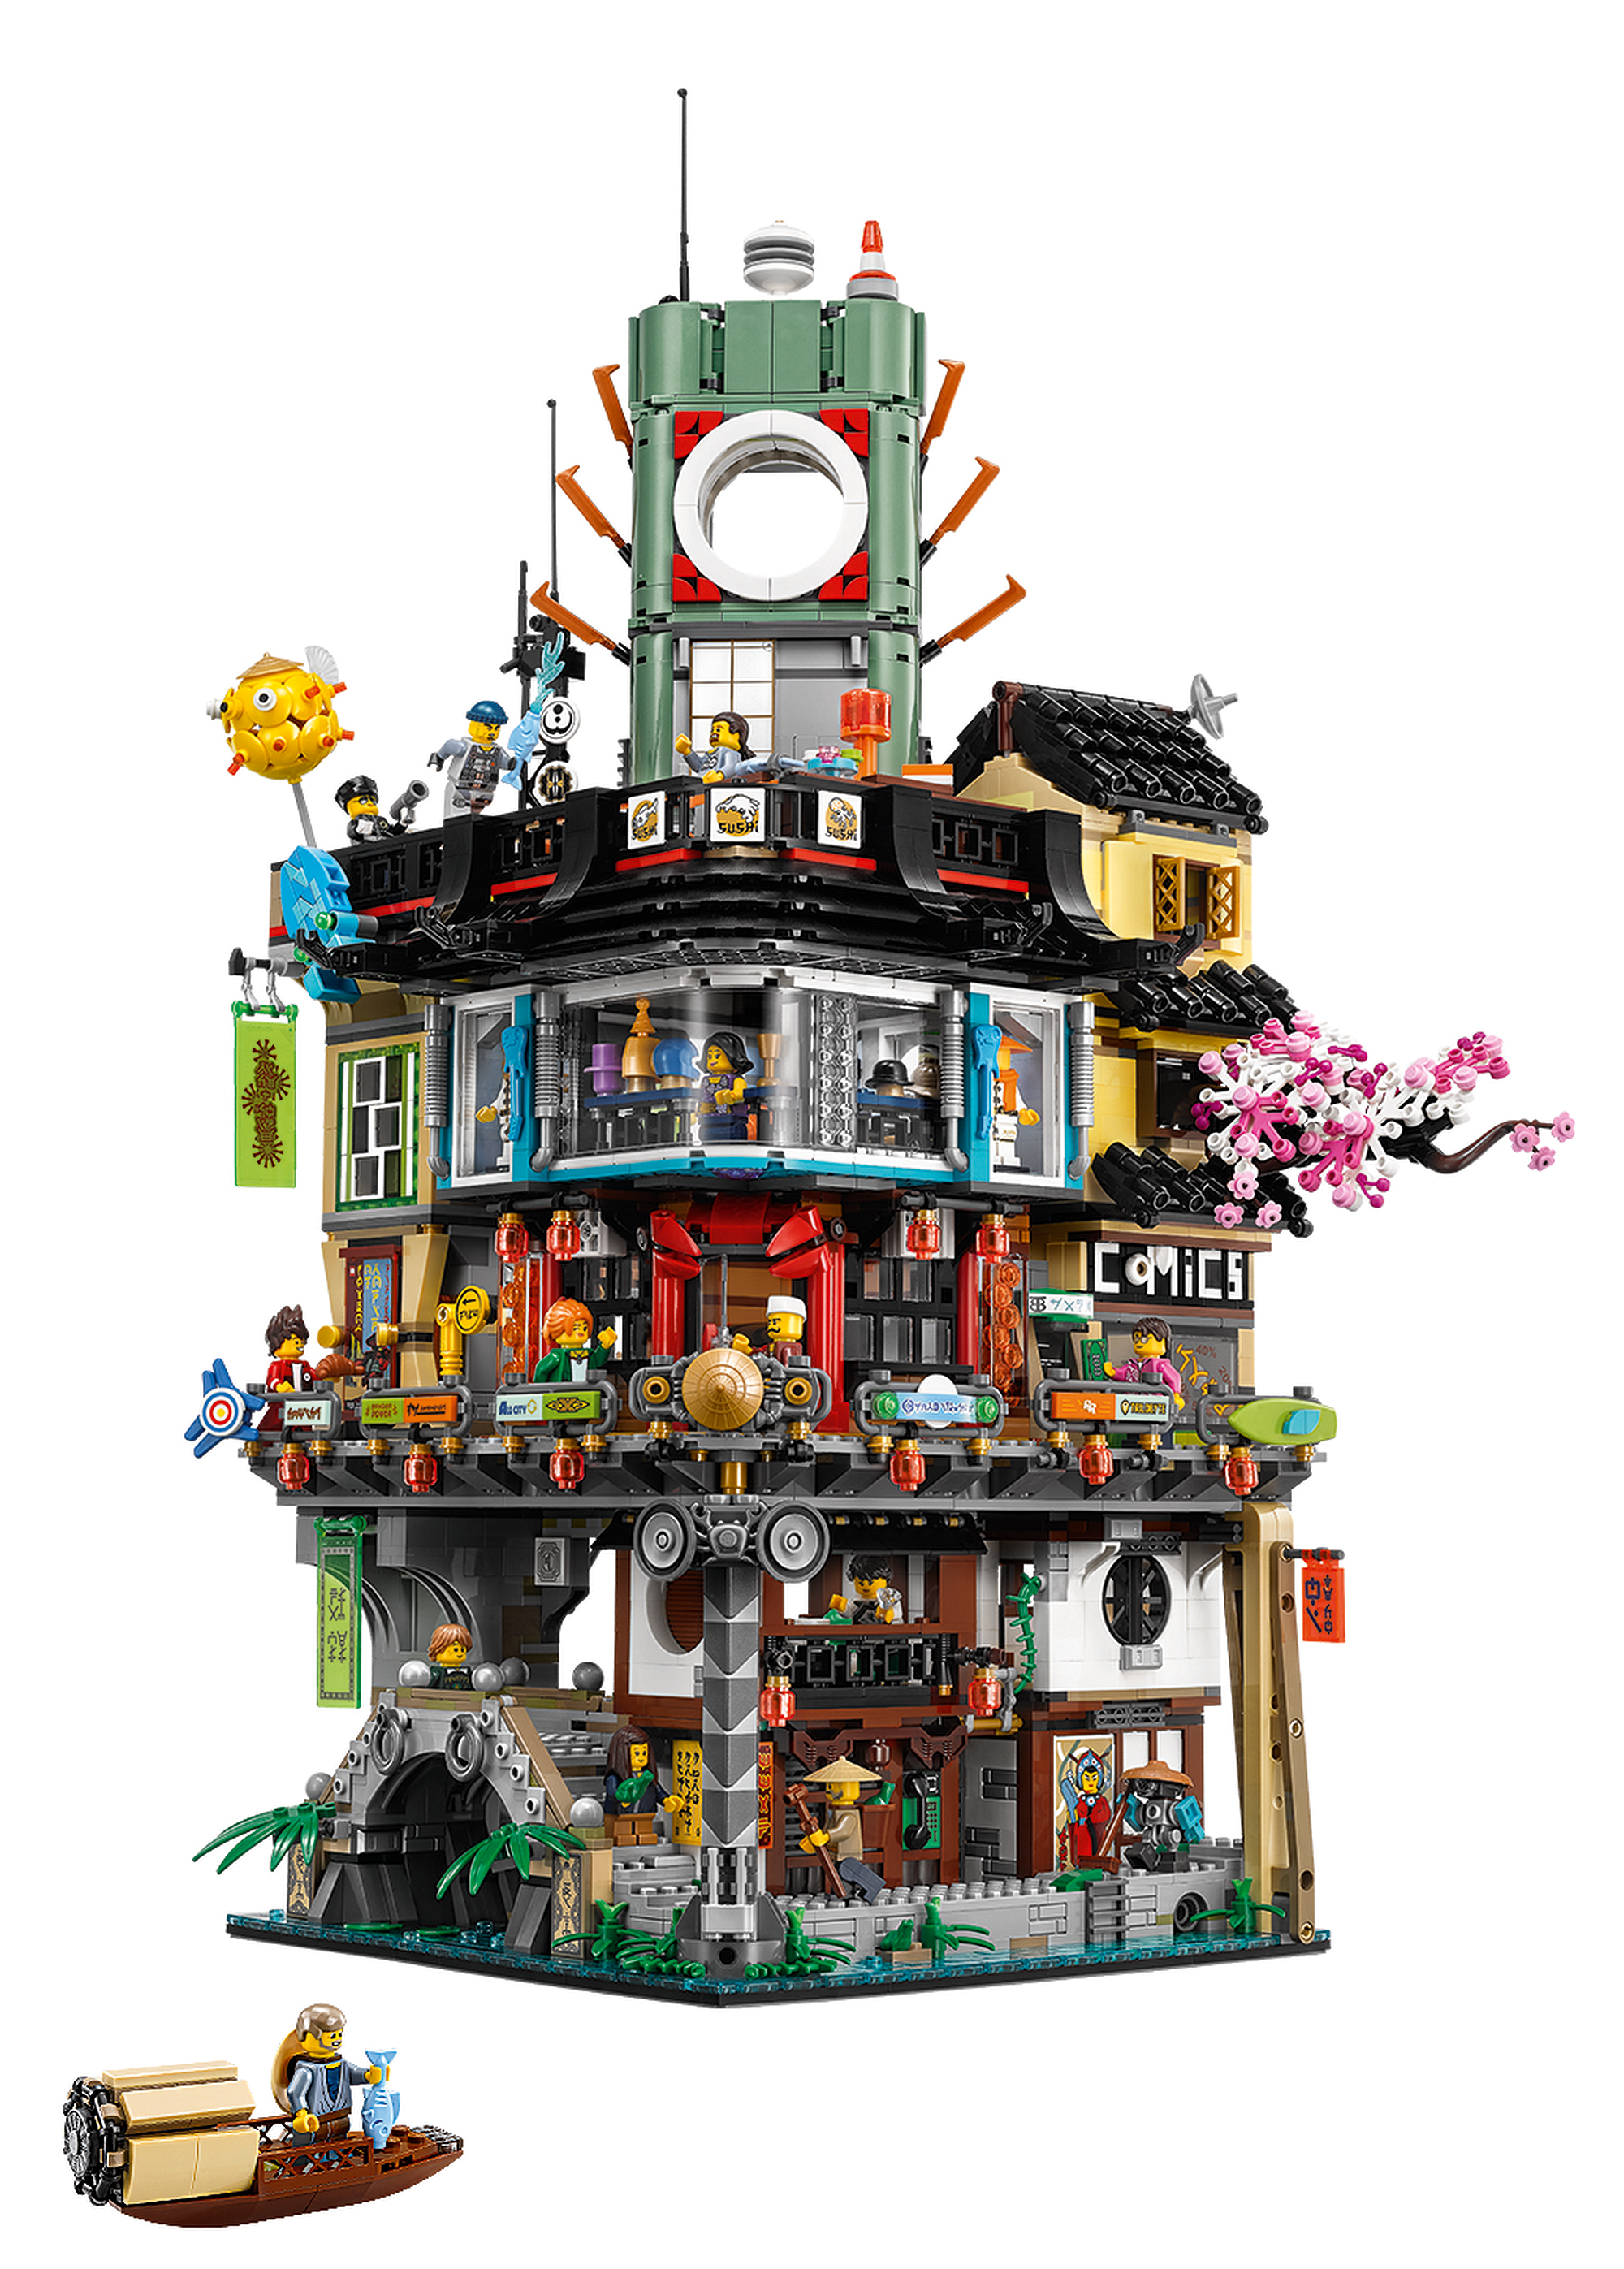 LEGO reveals 70620 Ninjago City, the massive modular Ninjago Movie